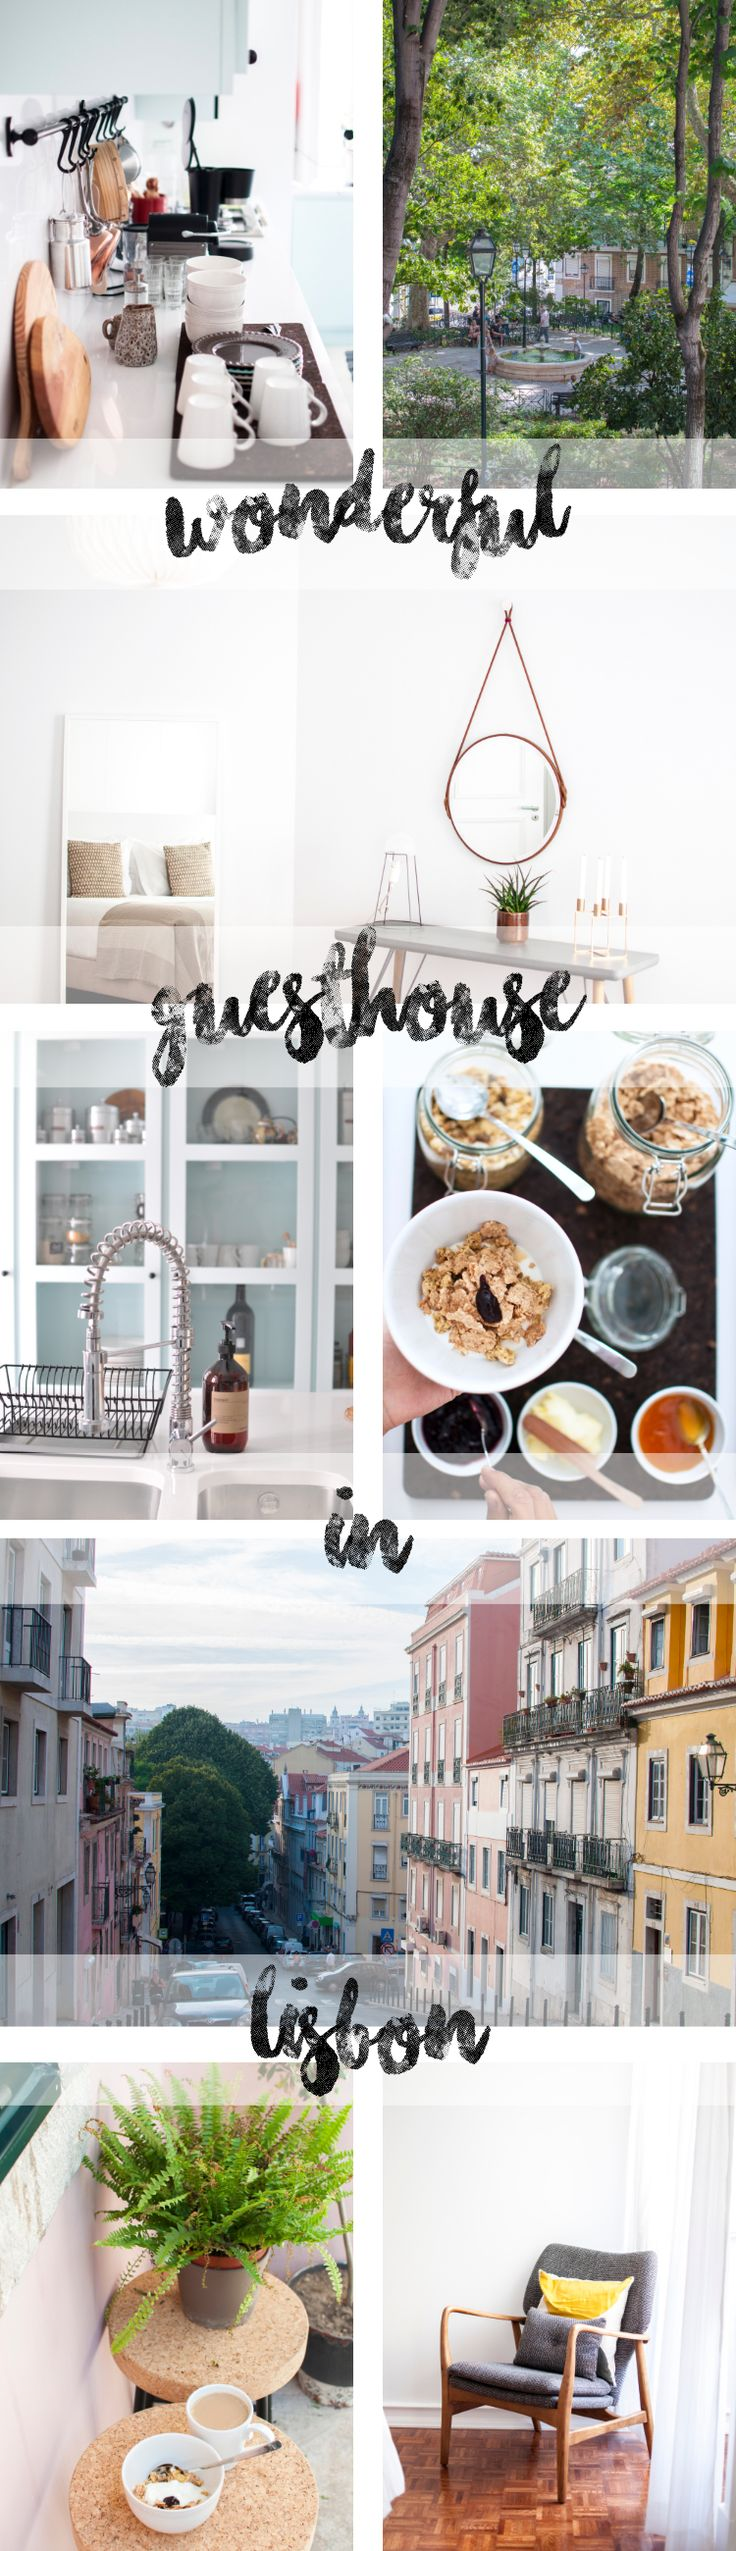 Lisbon Hipster & Coffee Guide - our beautiful Guesthouse the Casa C'Alma near Praça das Flores